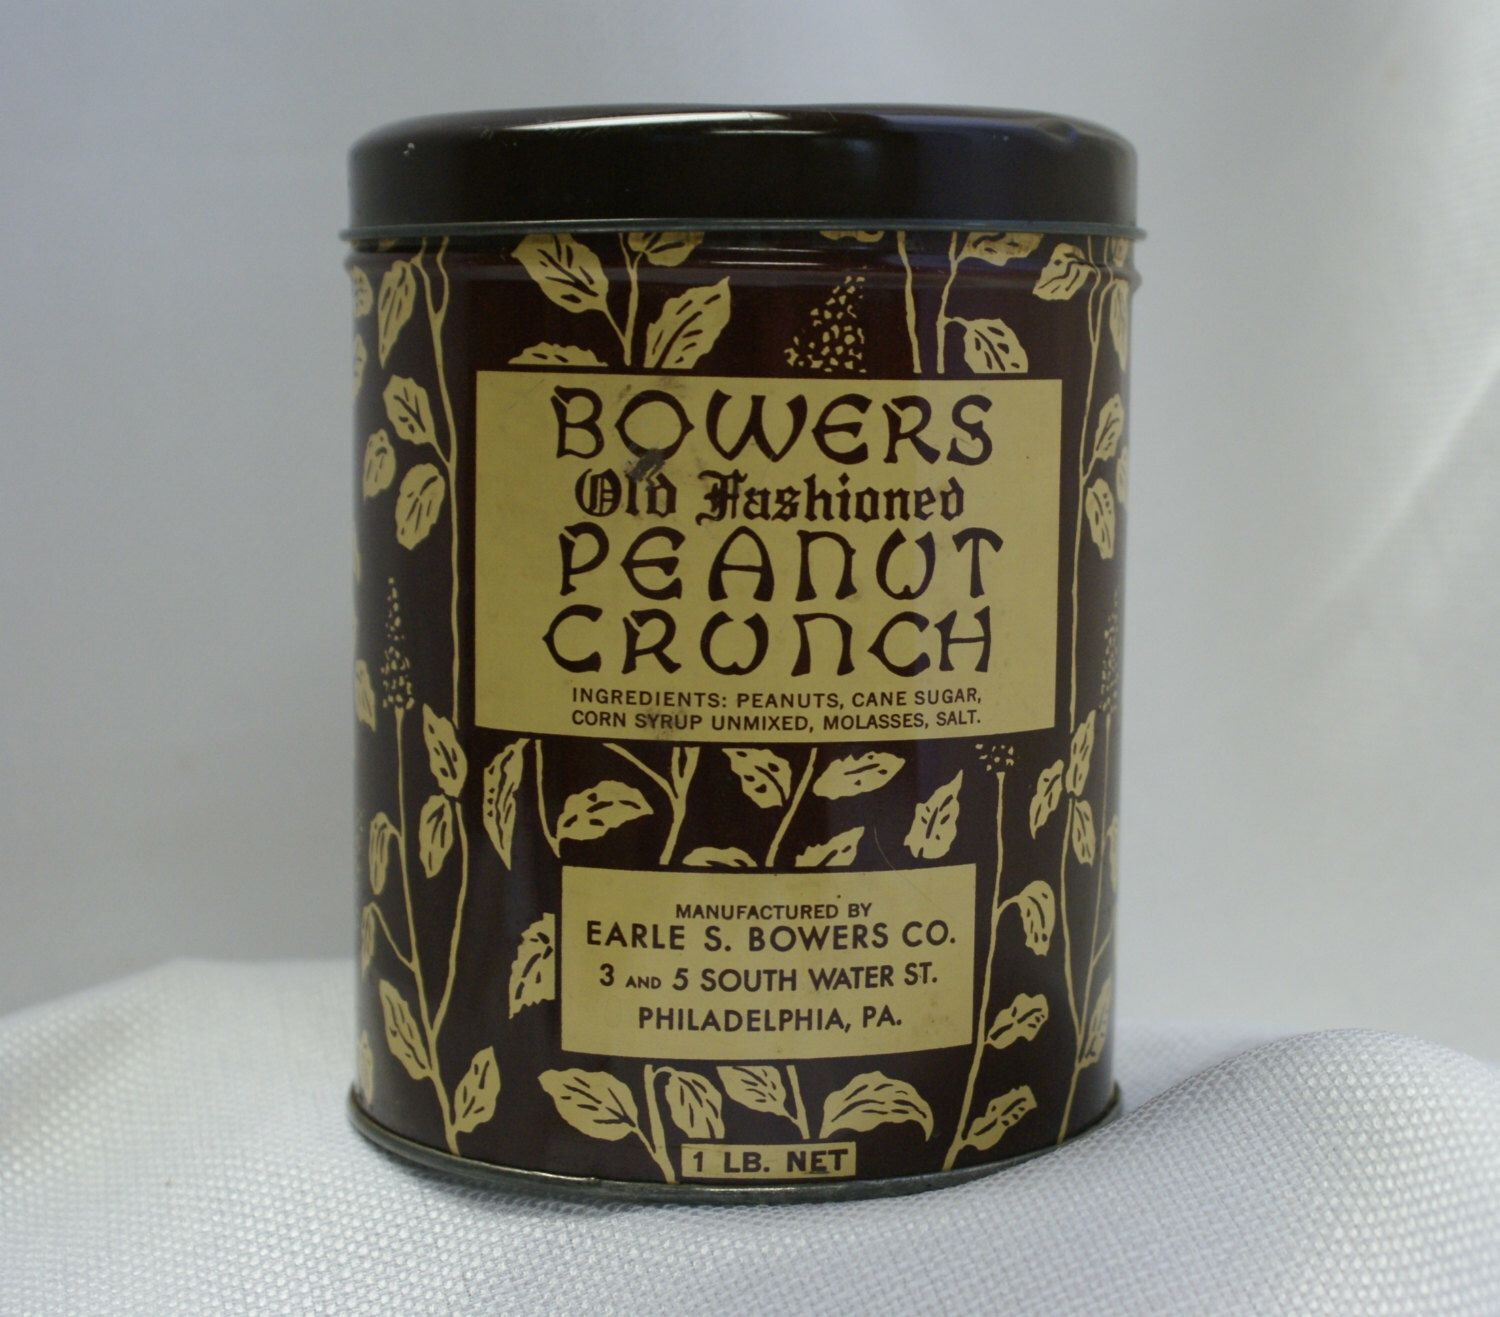 Vintage Brown tin, Bowers Peanut Crunch, kitchen can, candy tin by RusticBuckets on Etsy https://www.etsy.com/listing/200007978/vintage-brown-tin-bowers-peanut-crunch